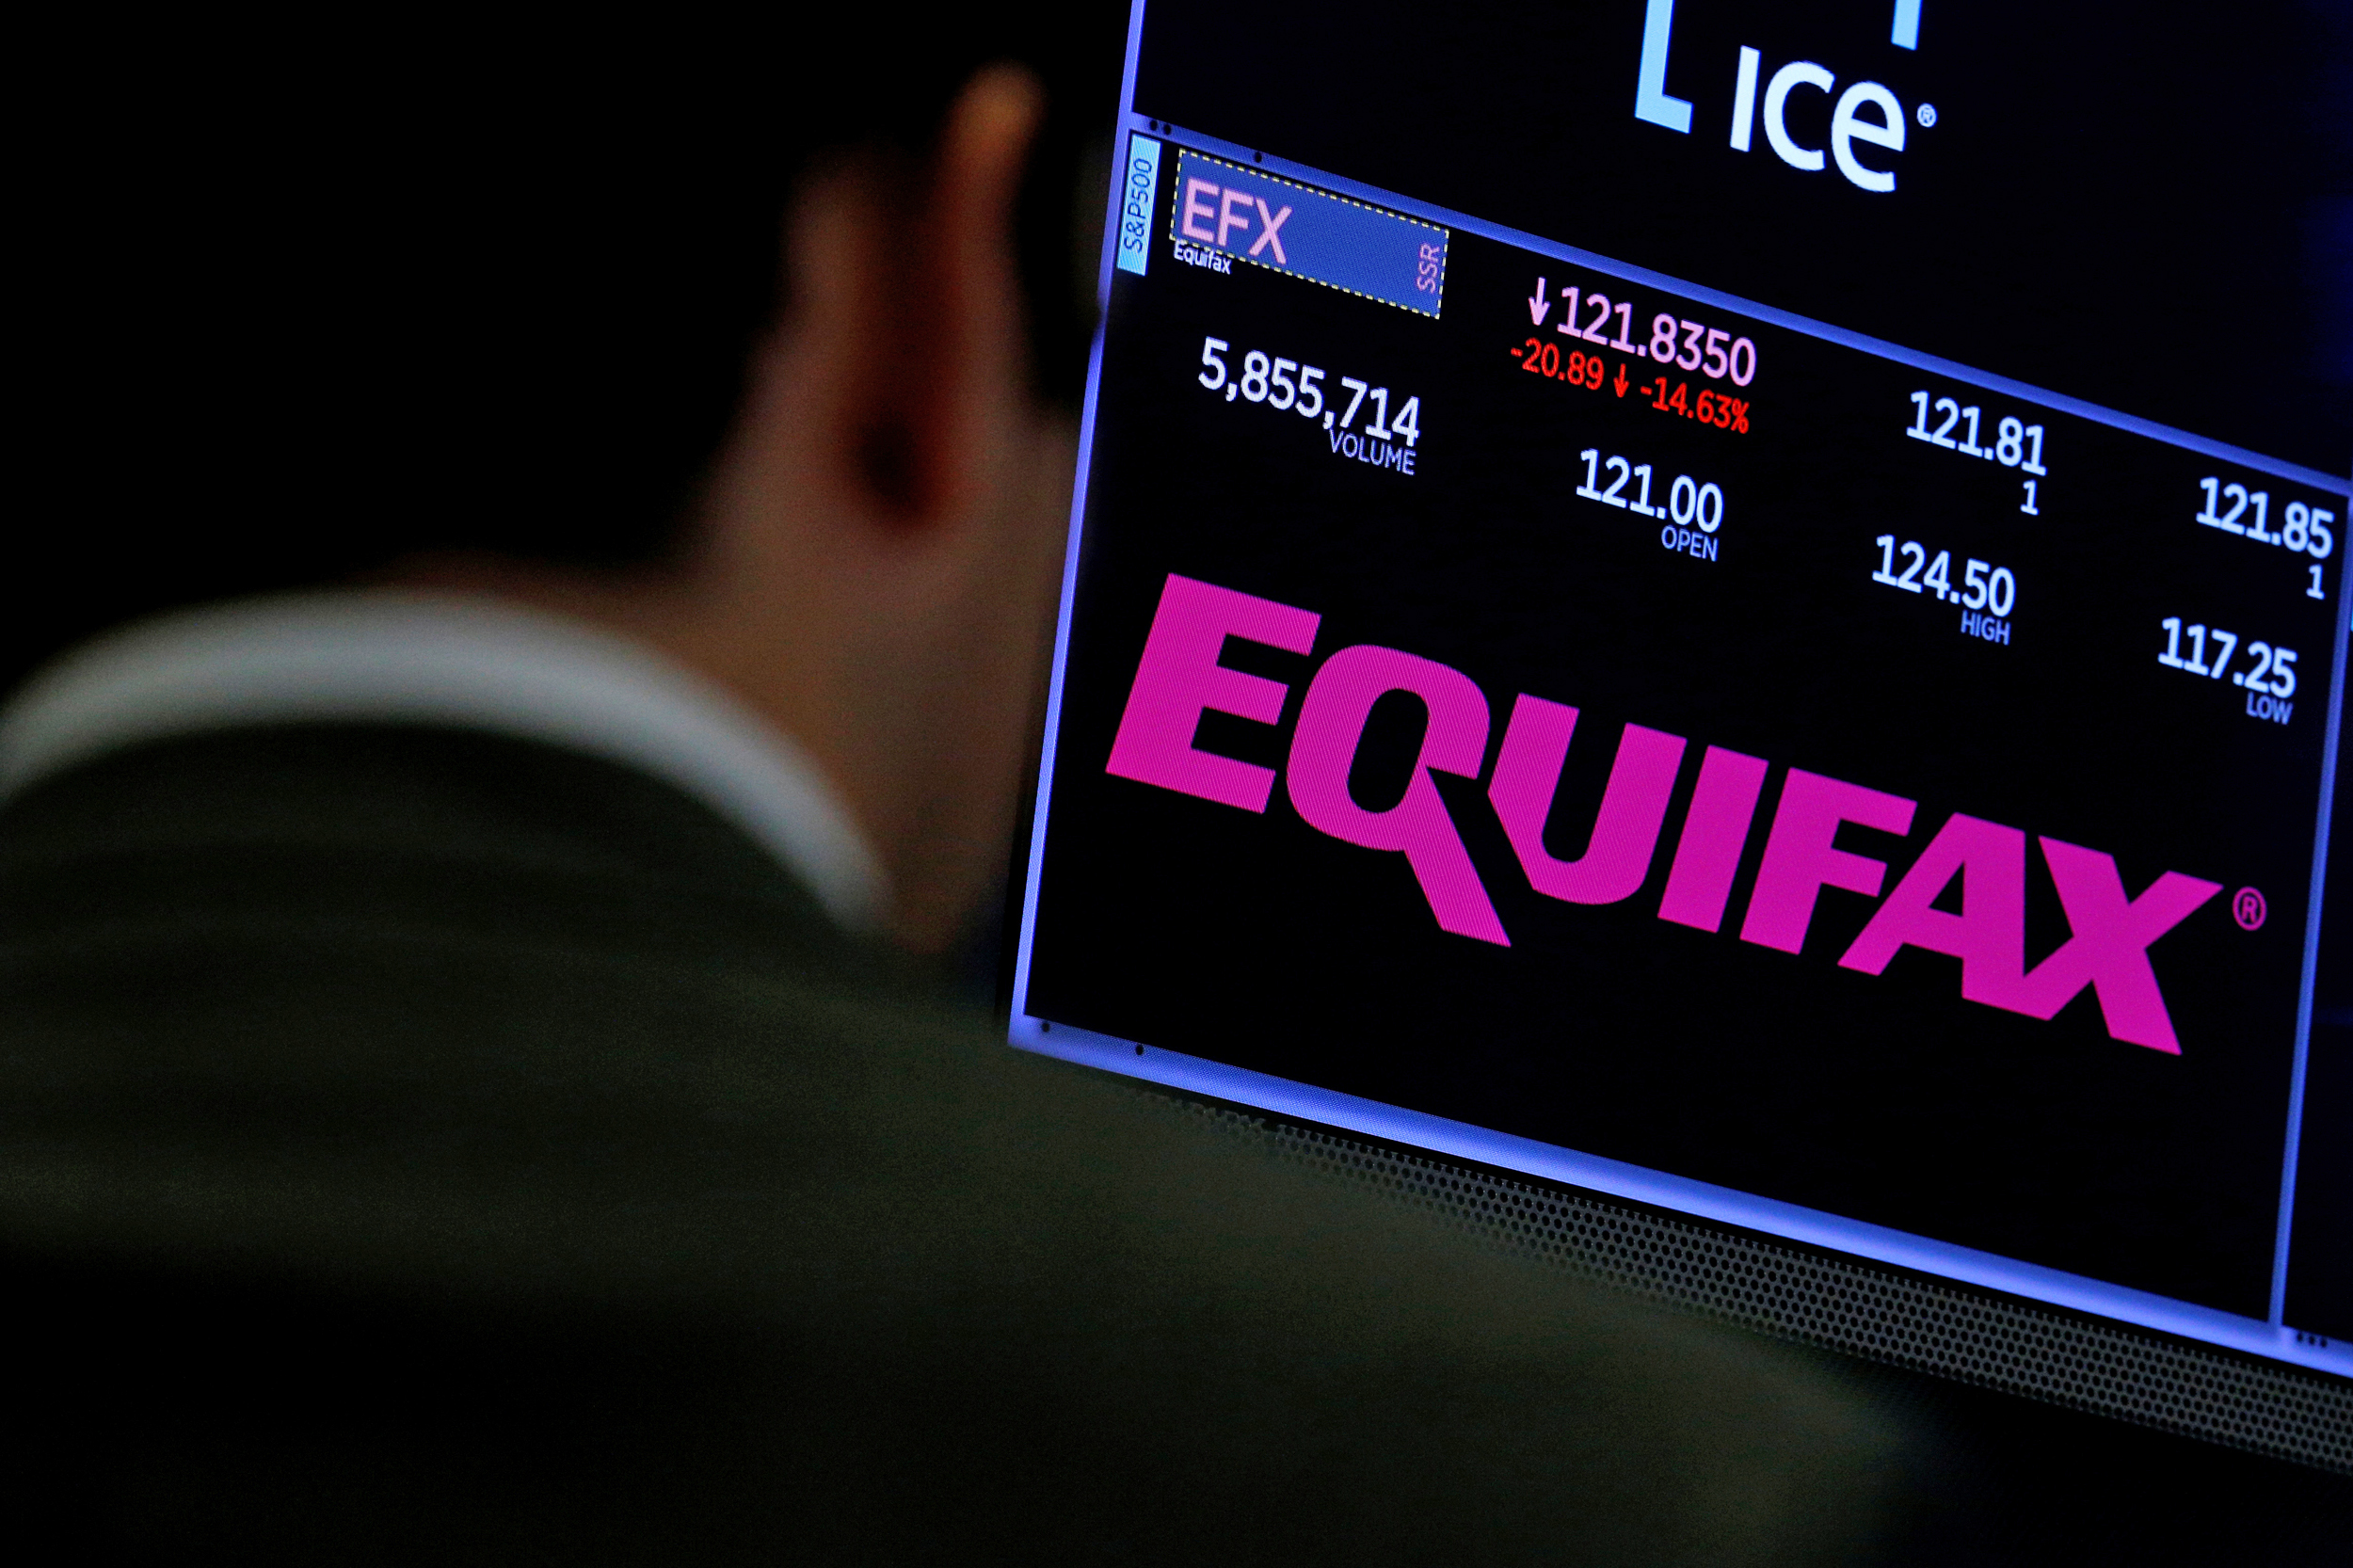 Departing Equifax Security Head Was College Music Major